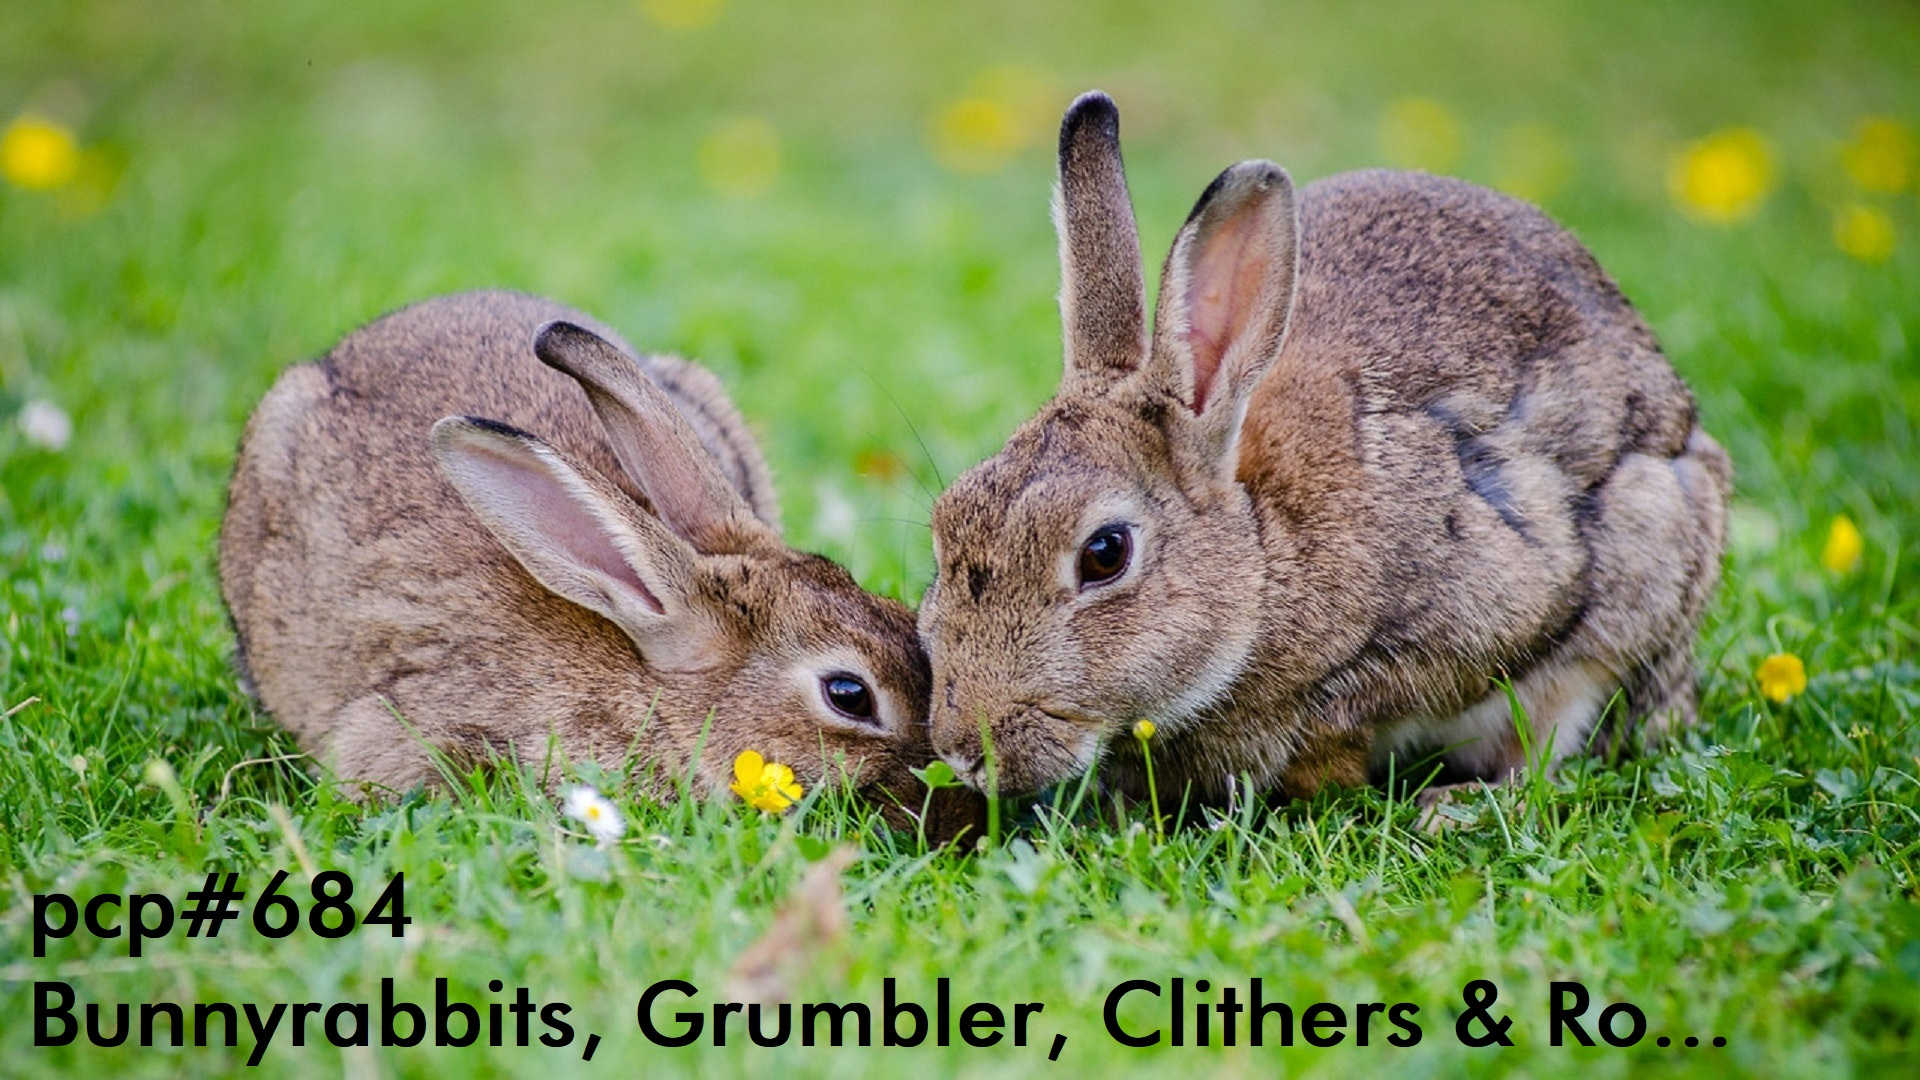 PCP#684... Bunnyrabbits, Grumbler, Clithers and Ro...